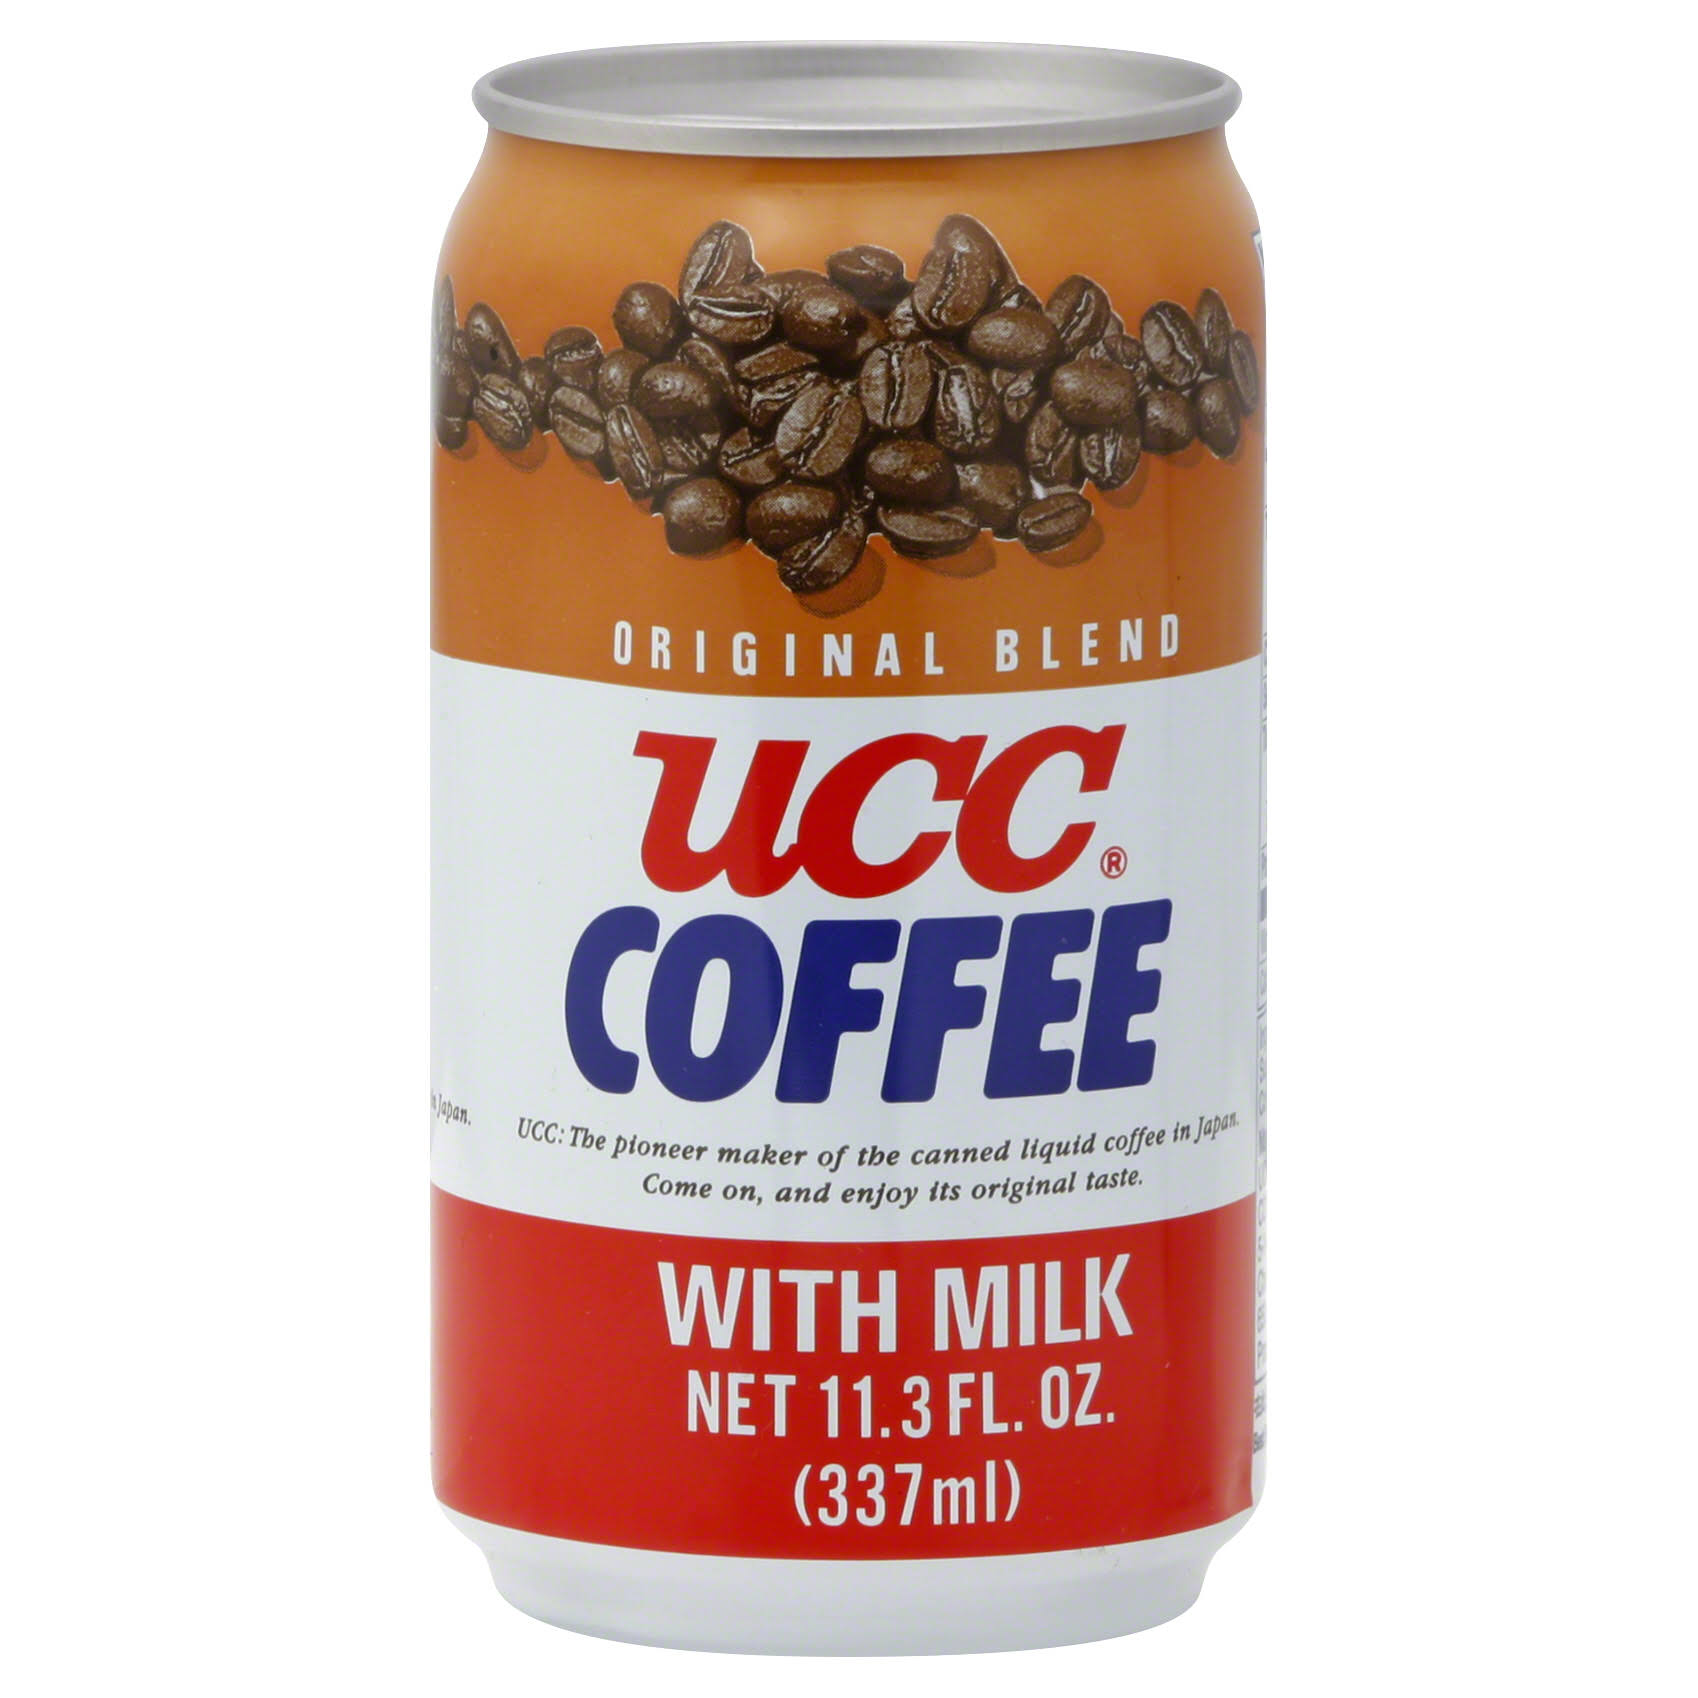 Ucc Original Coffee - with Milk, 11.3oz